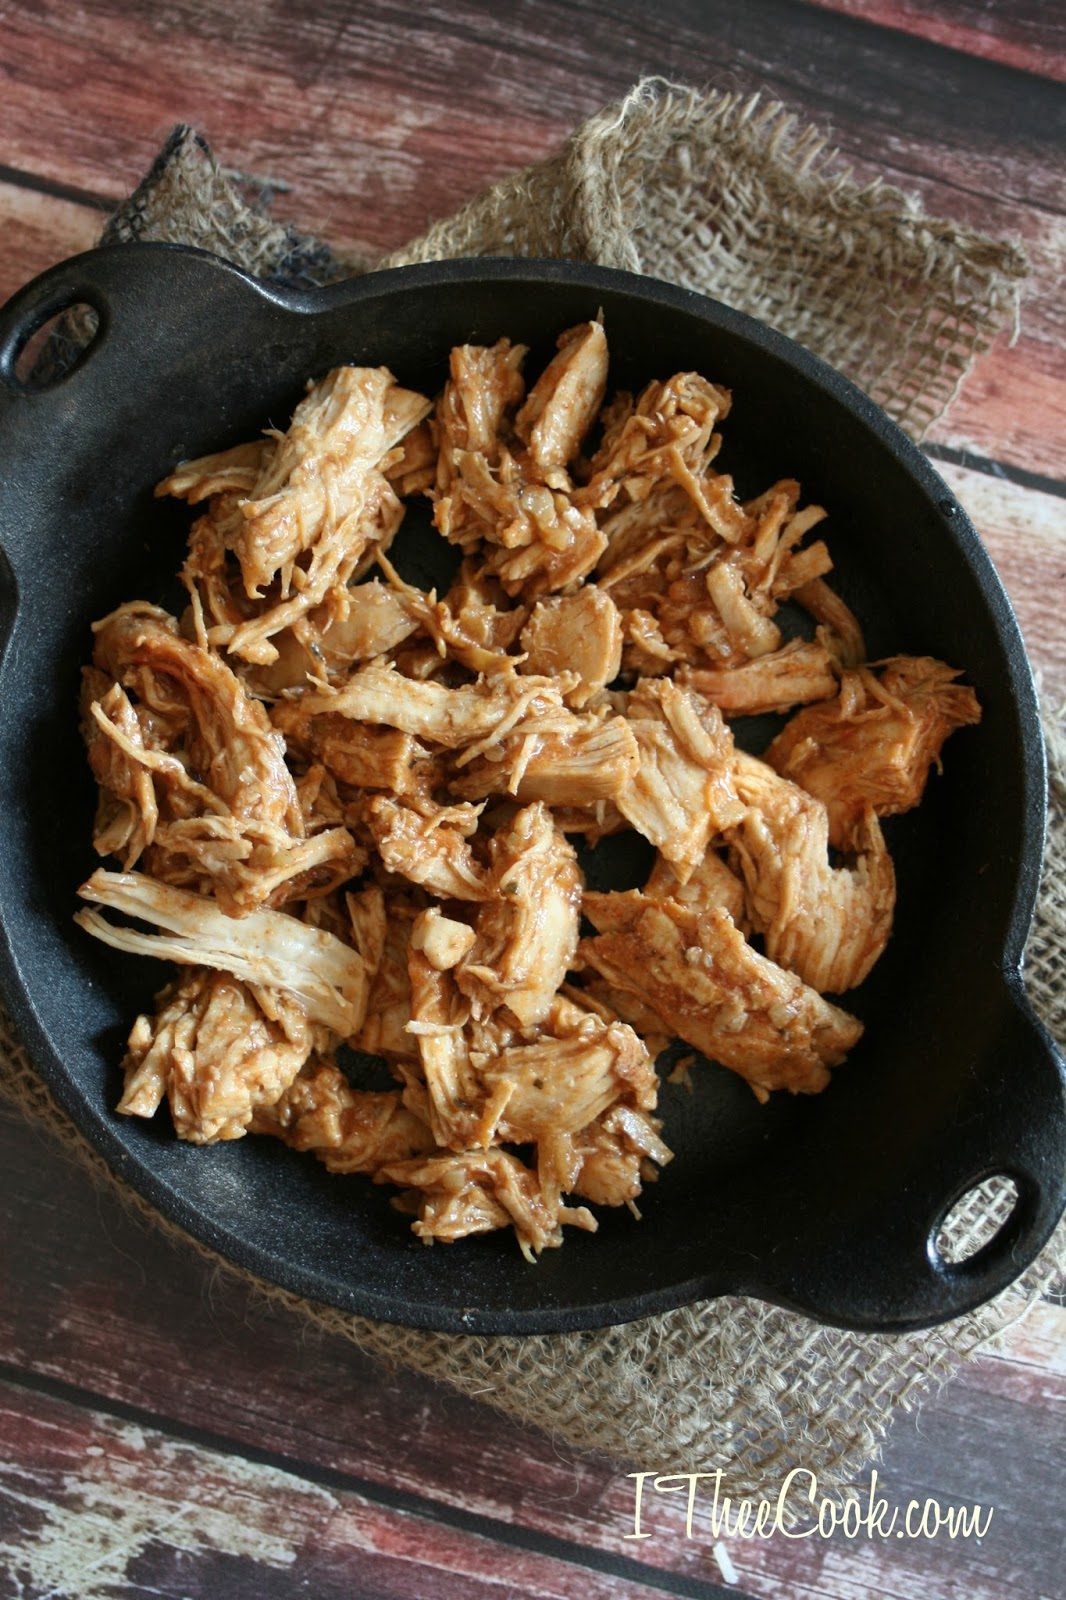 I Thee Cook All Purpose Slow Cooker Shredded Chicken